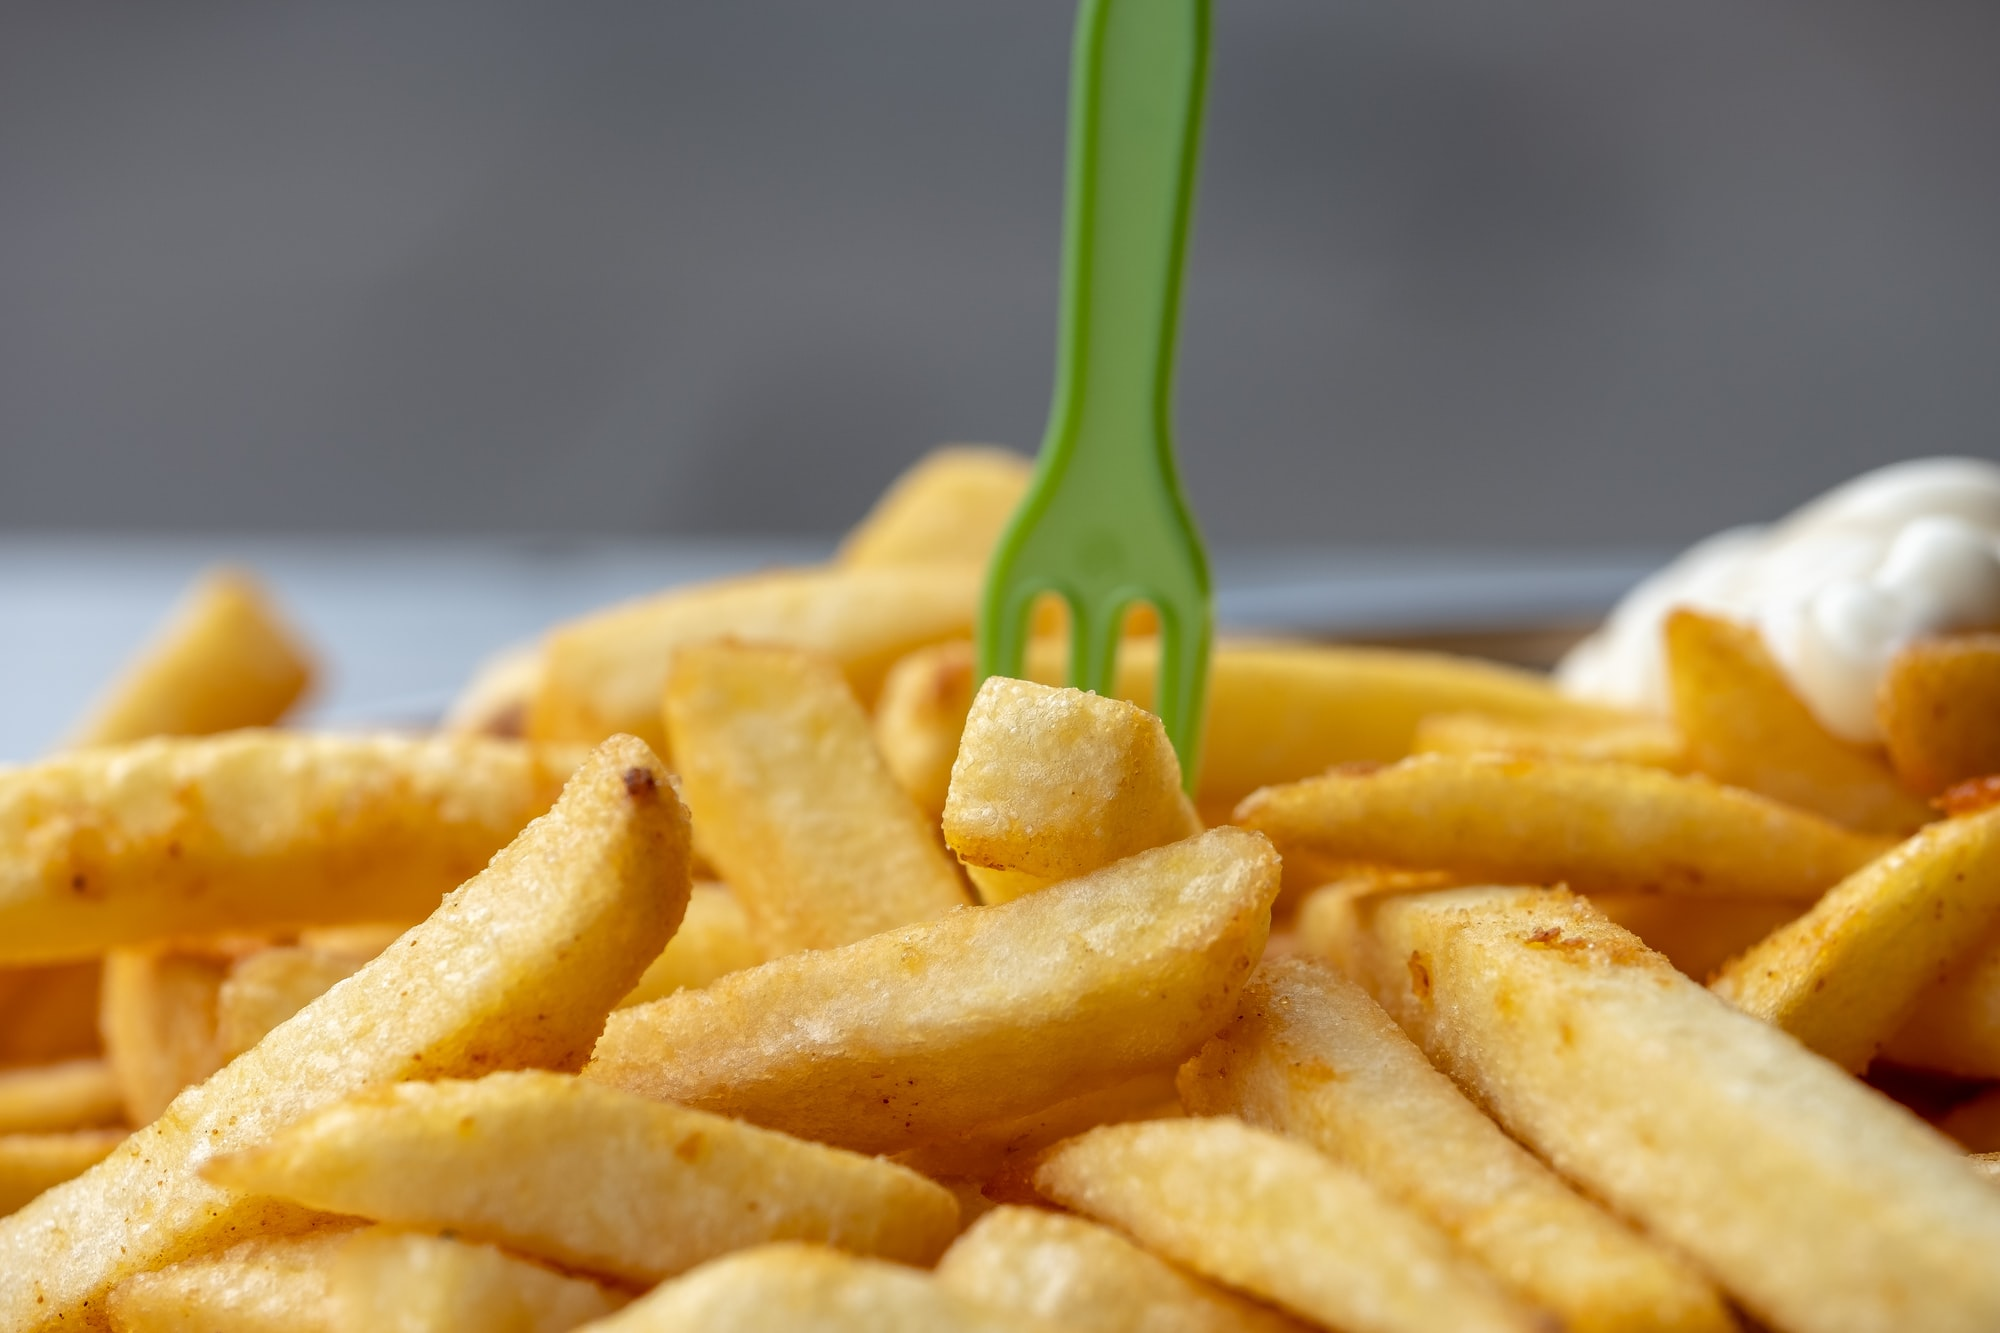 French fries / Pommes frites